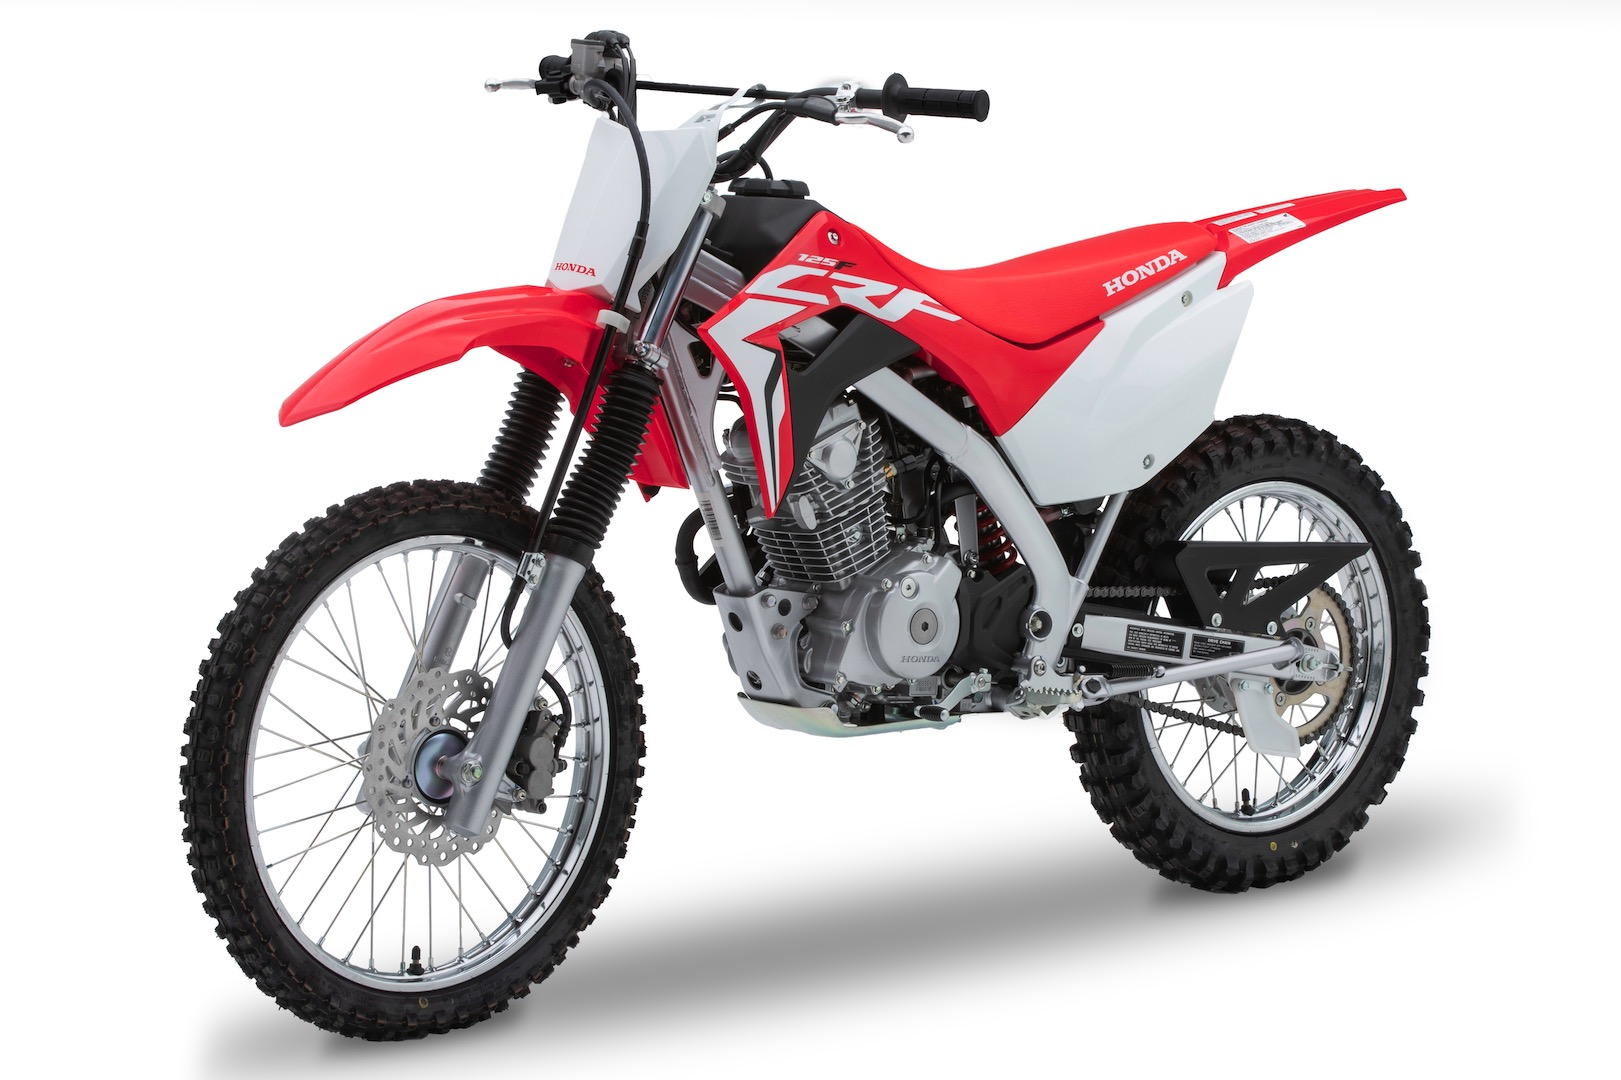 2019 Honda CRF125F and CRF125F Big Wheel First Look (8 Fast